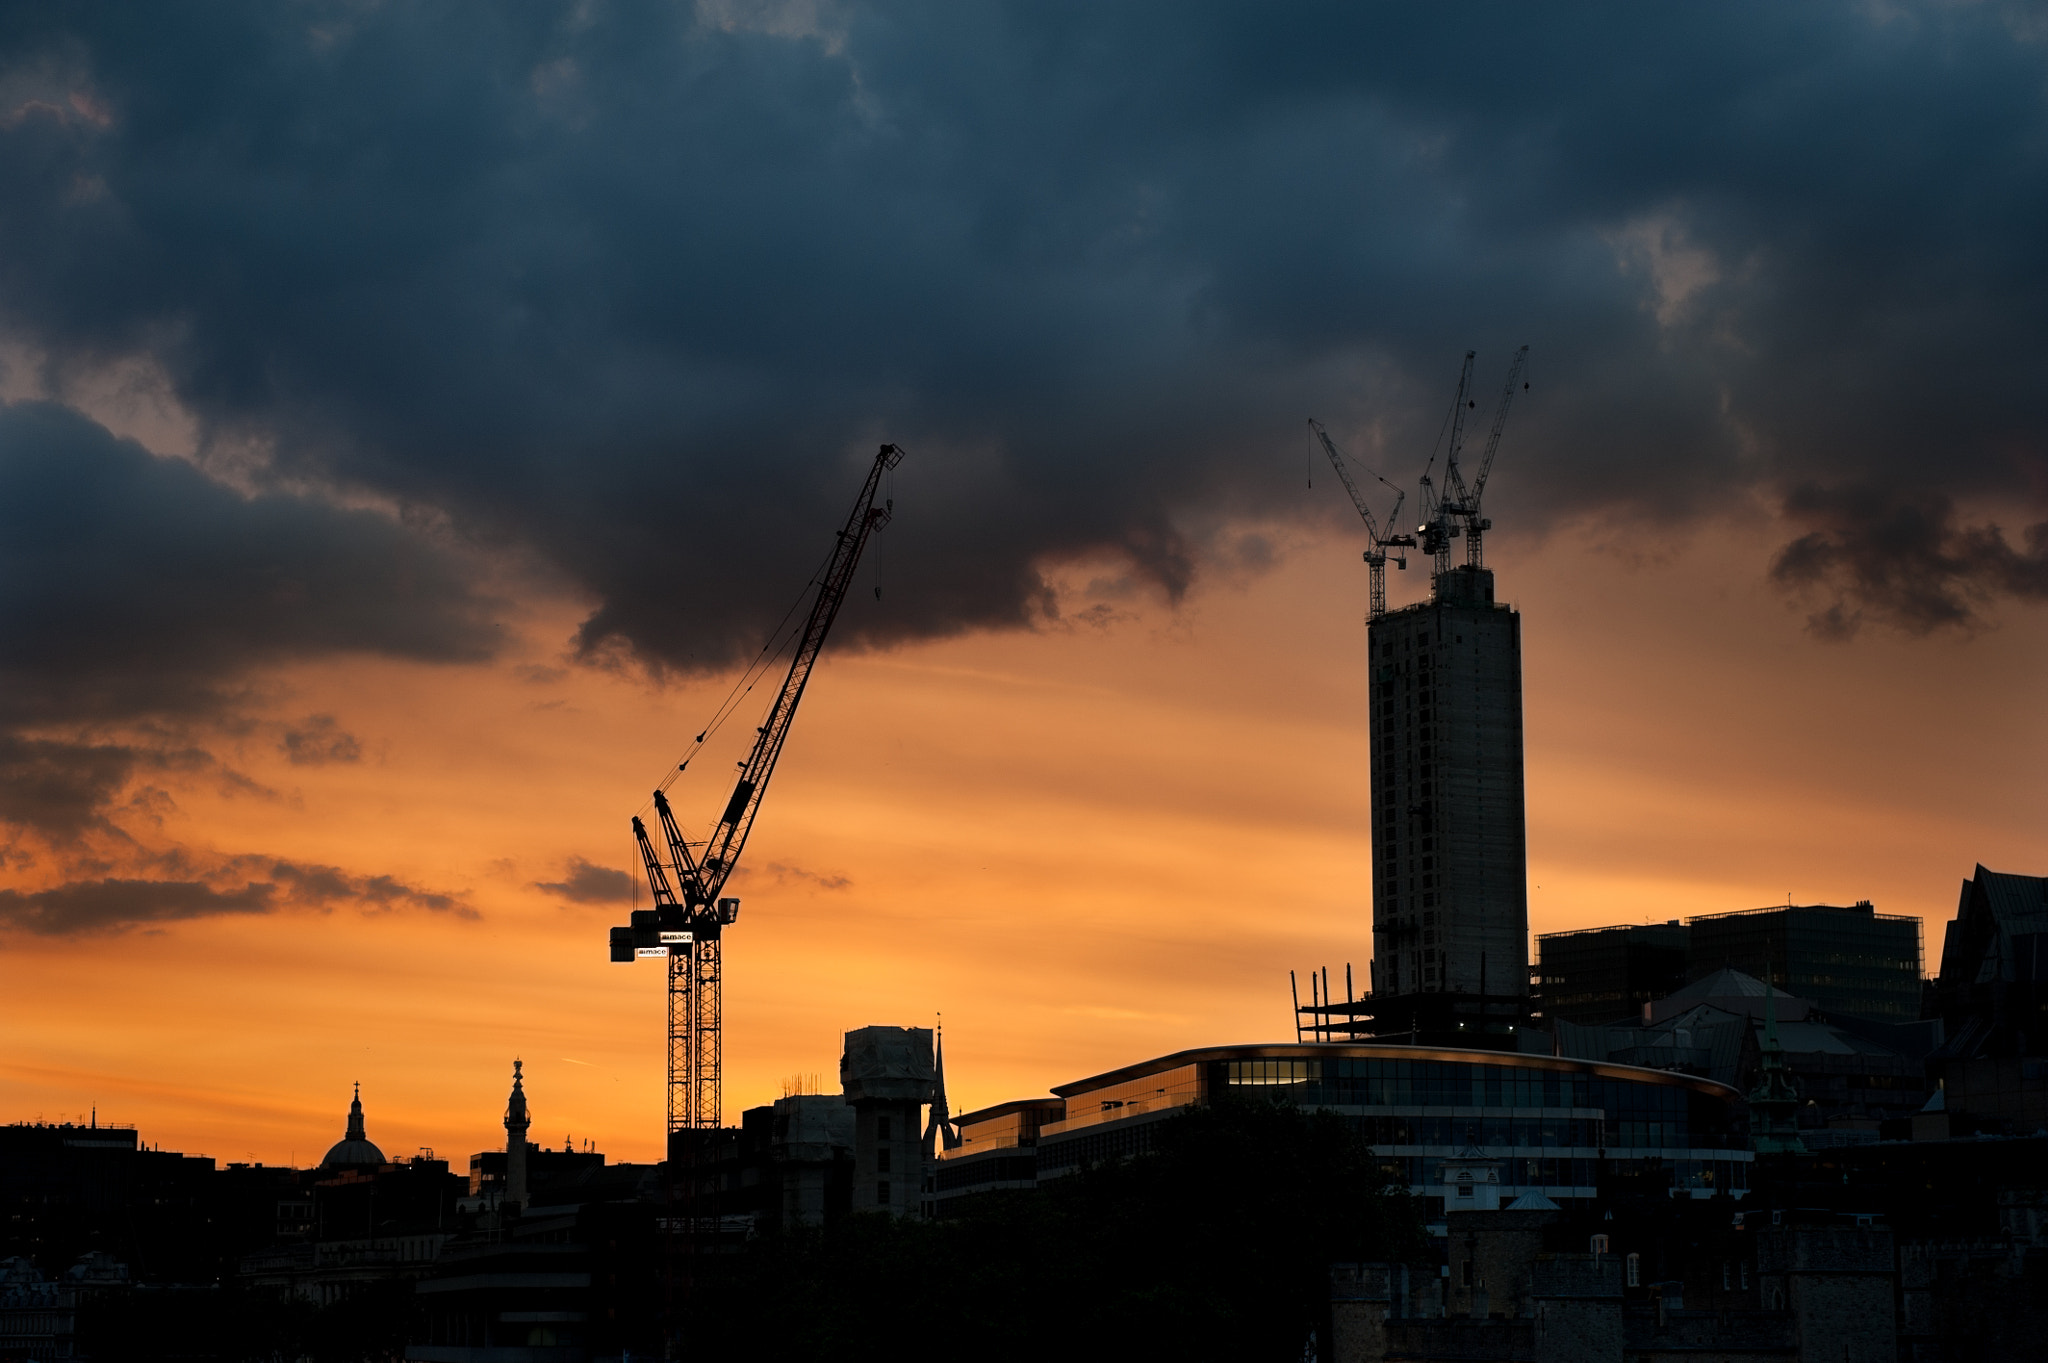 Photograph London Cranes by Hubert Mical on 500px